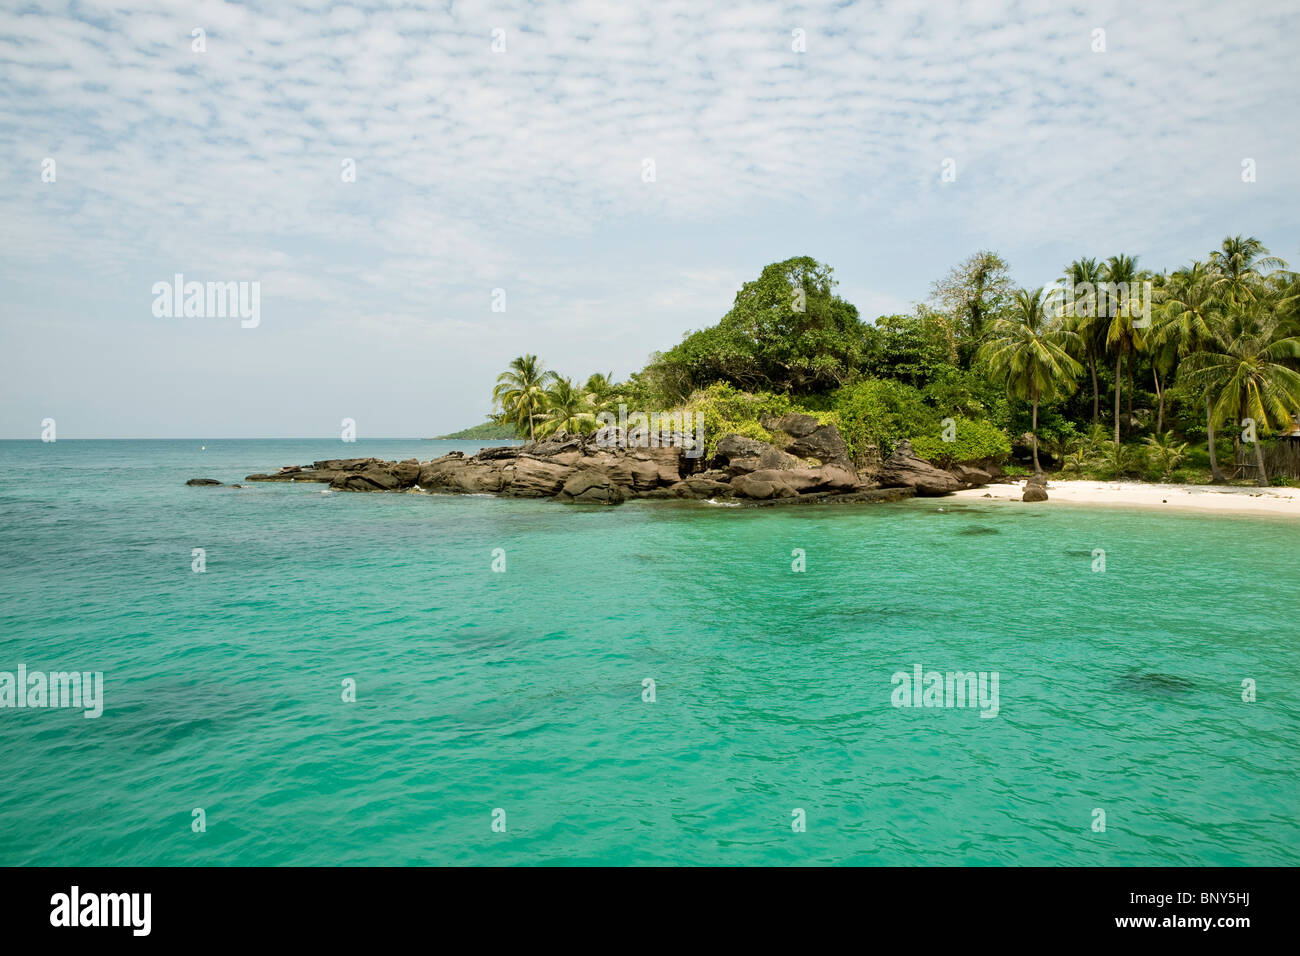 Fingernail Beach in the An Thoi islands, south of Phu Quoc island, Vietnam - Stock Image